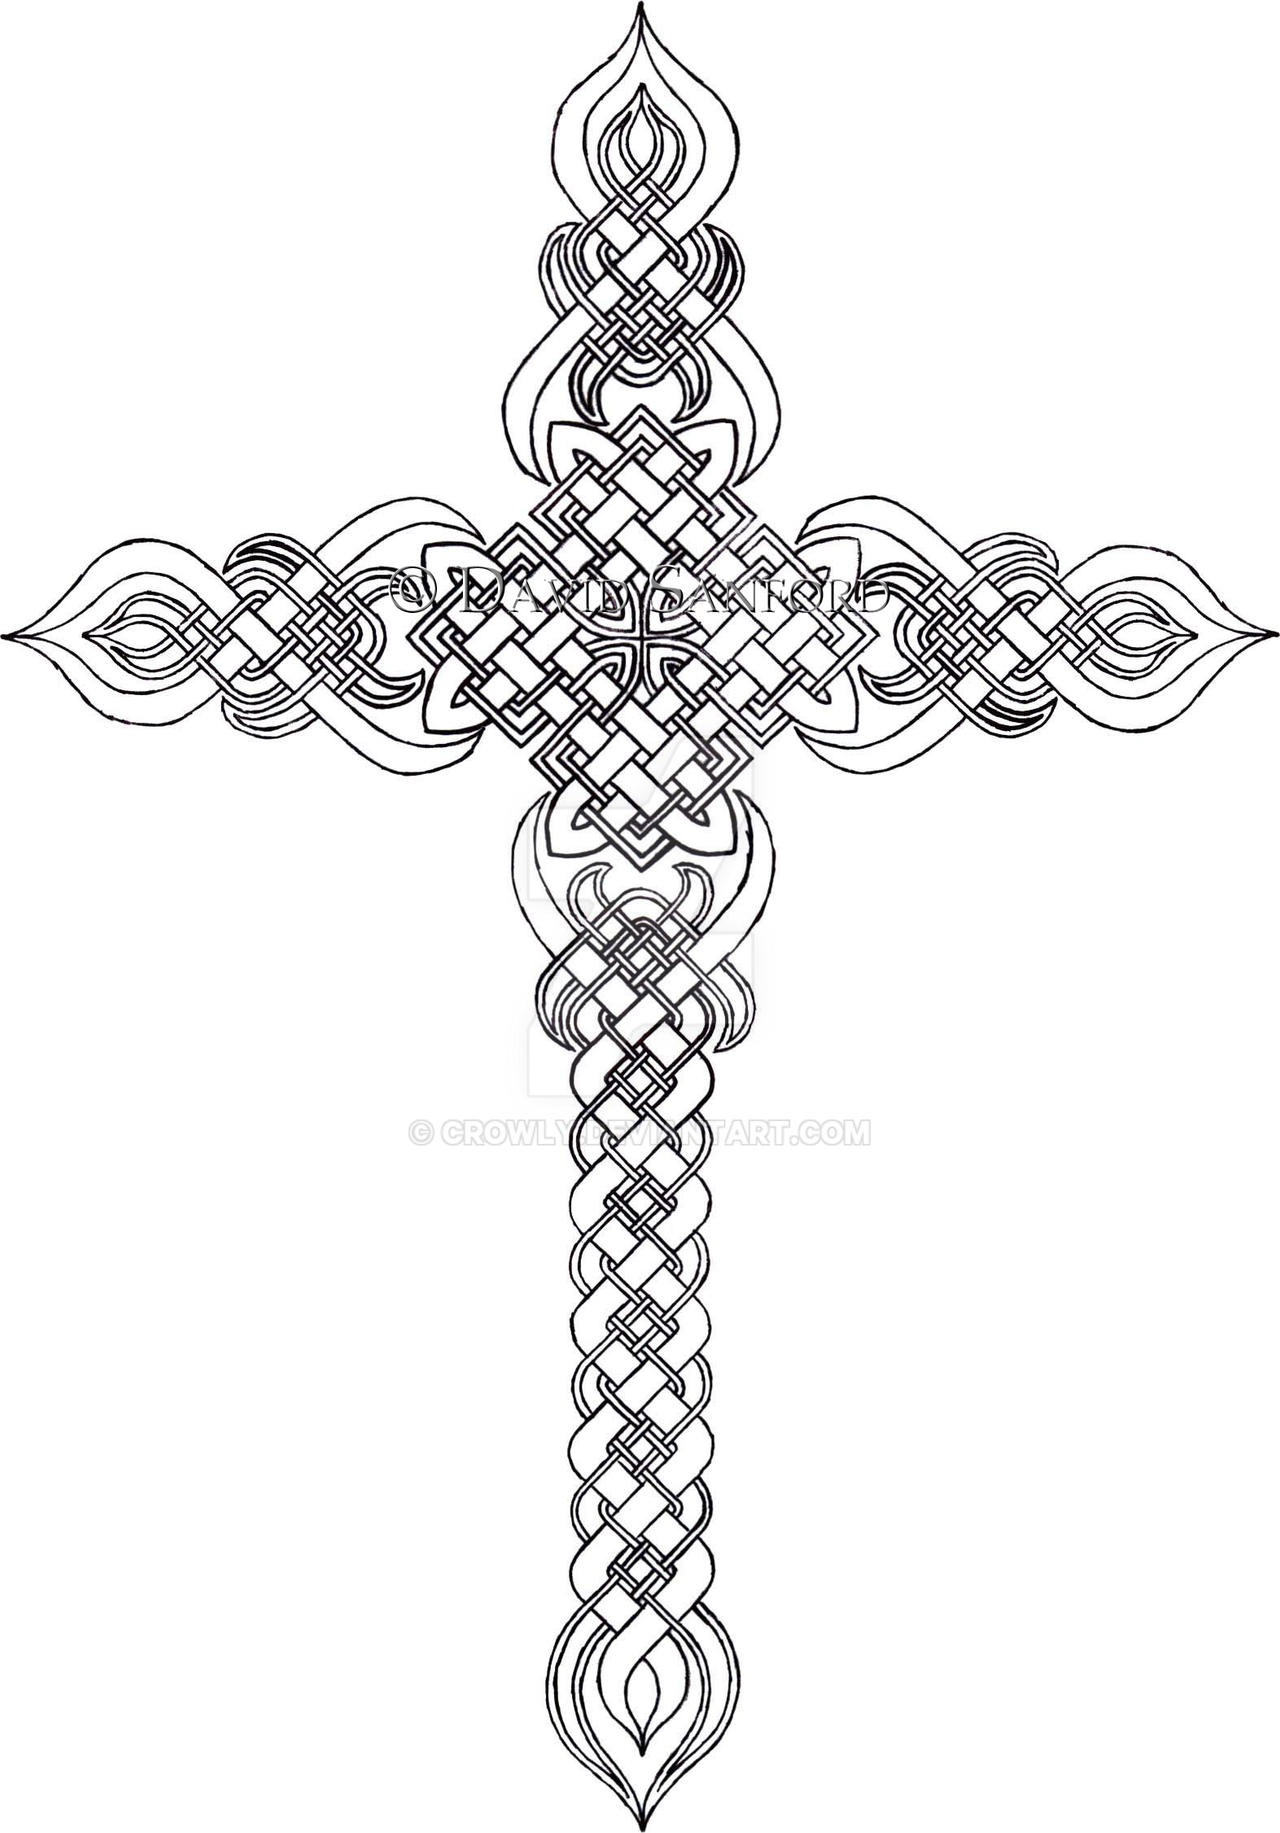 Cross by crowly on deviantart for Adult coloring pages cross